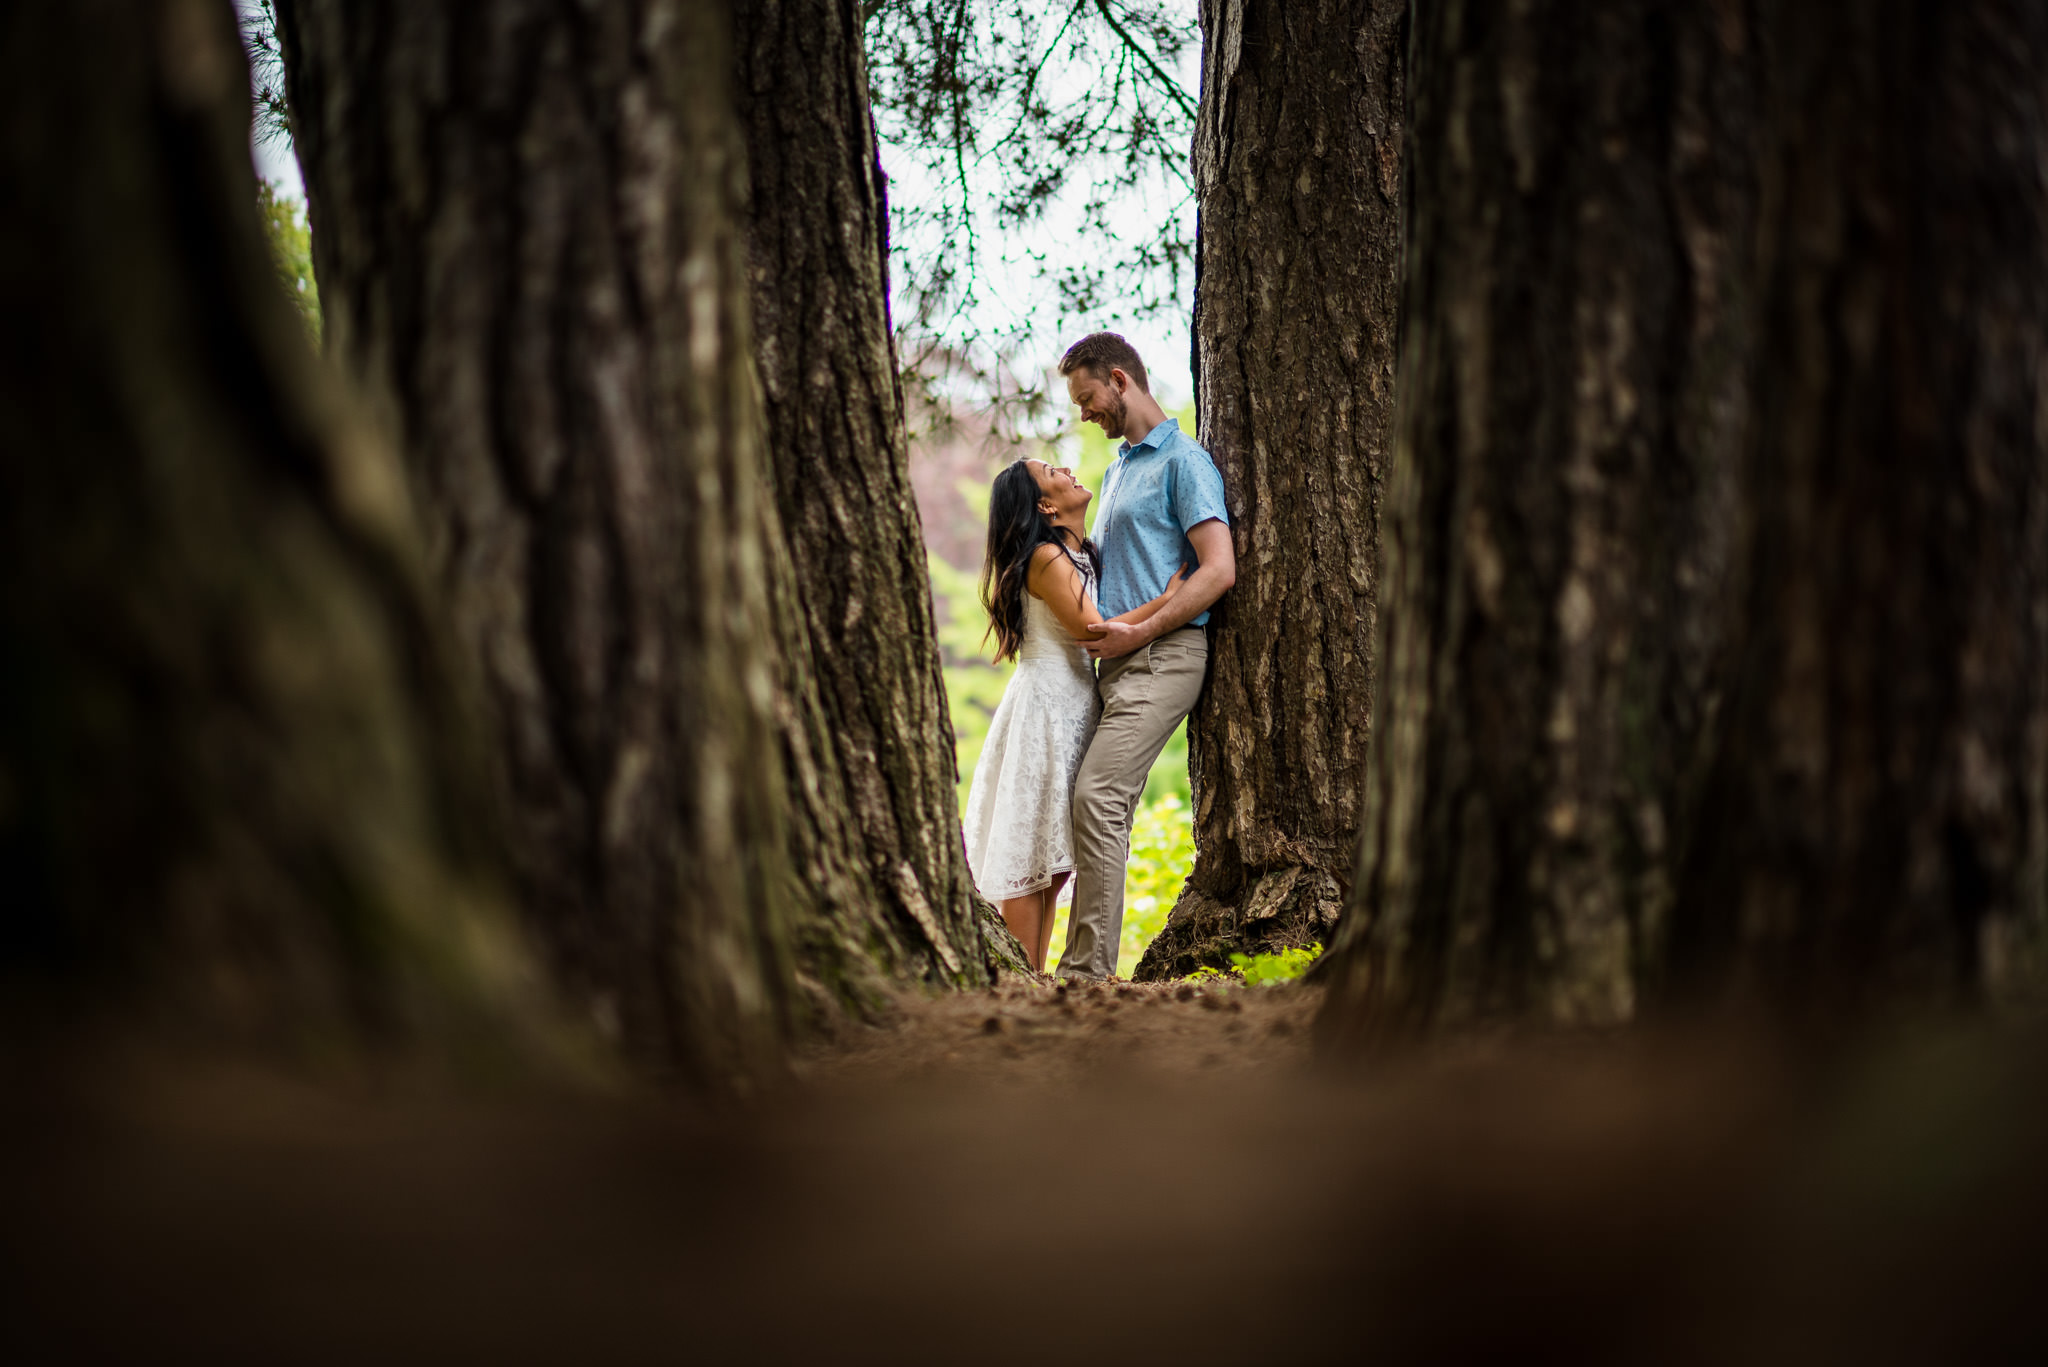 victoria-wedding-photographers-stanley-park-engagement-photos-5.jpg